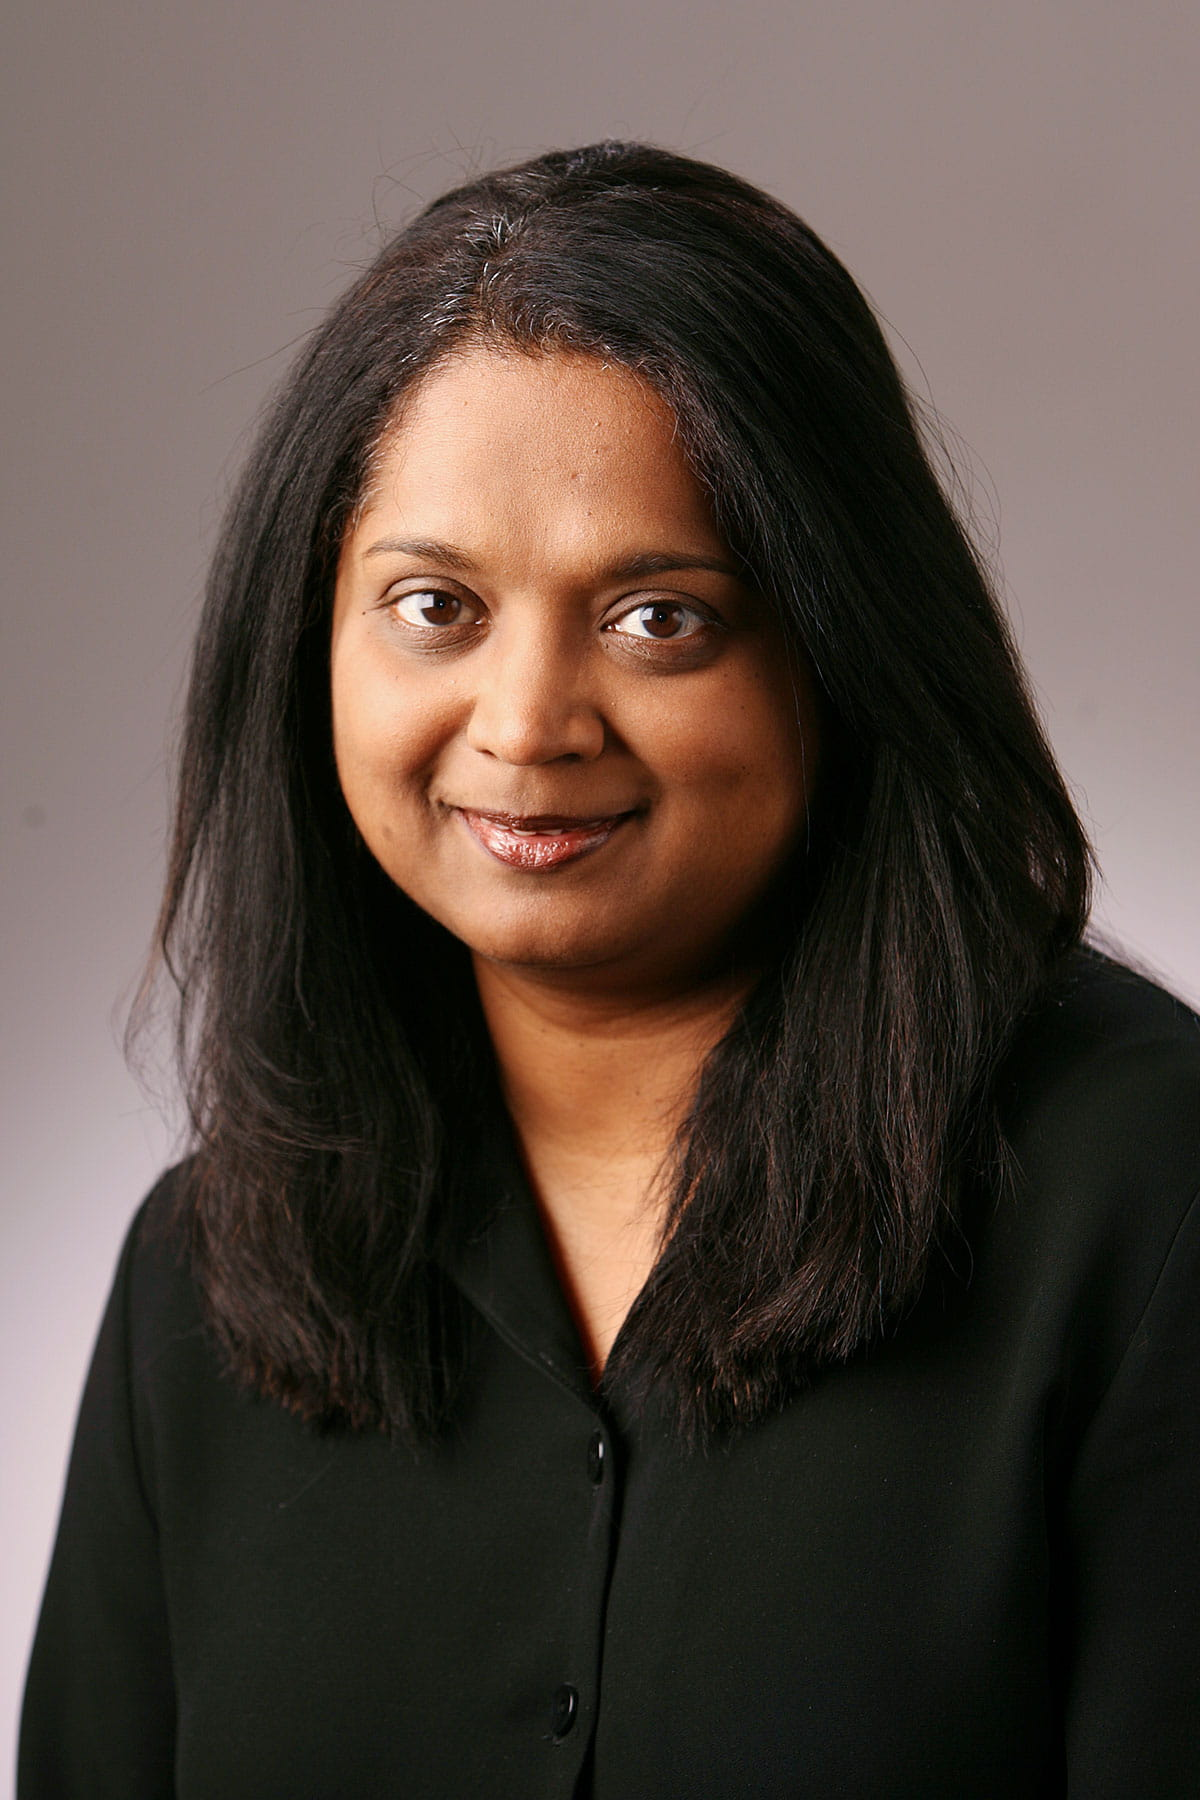 A photo of Rashmi Hegde.